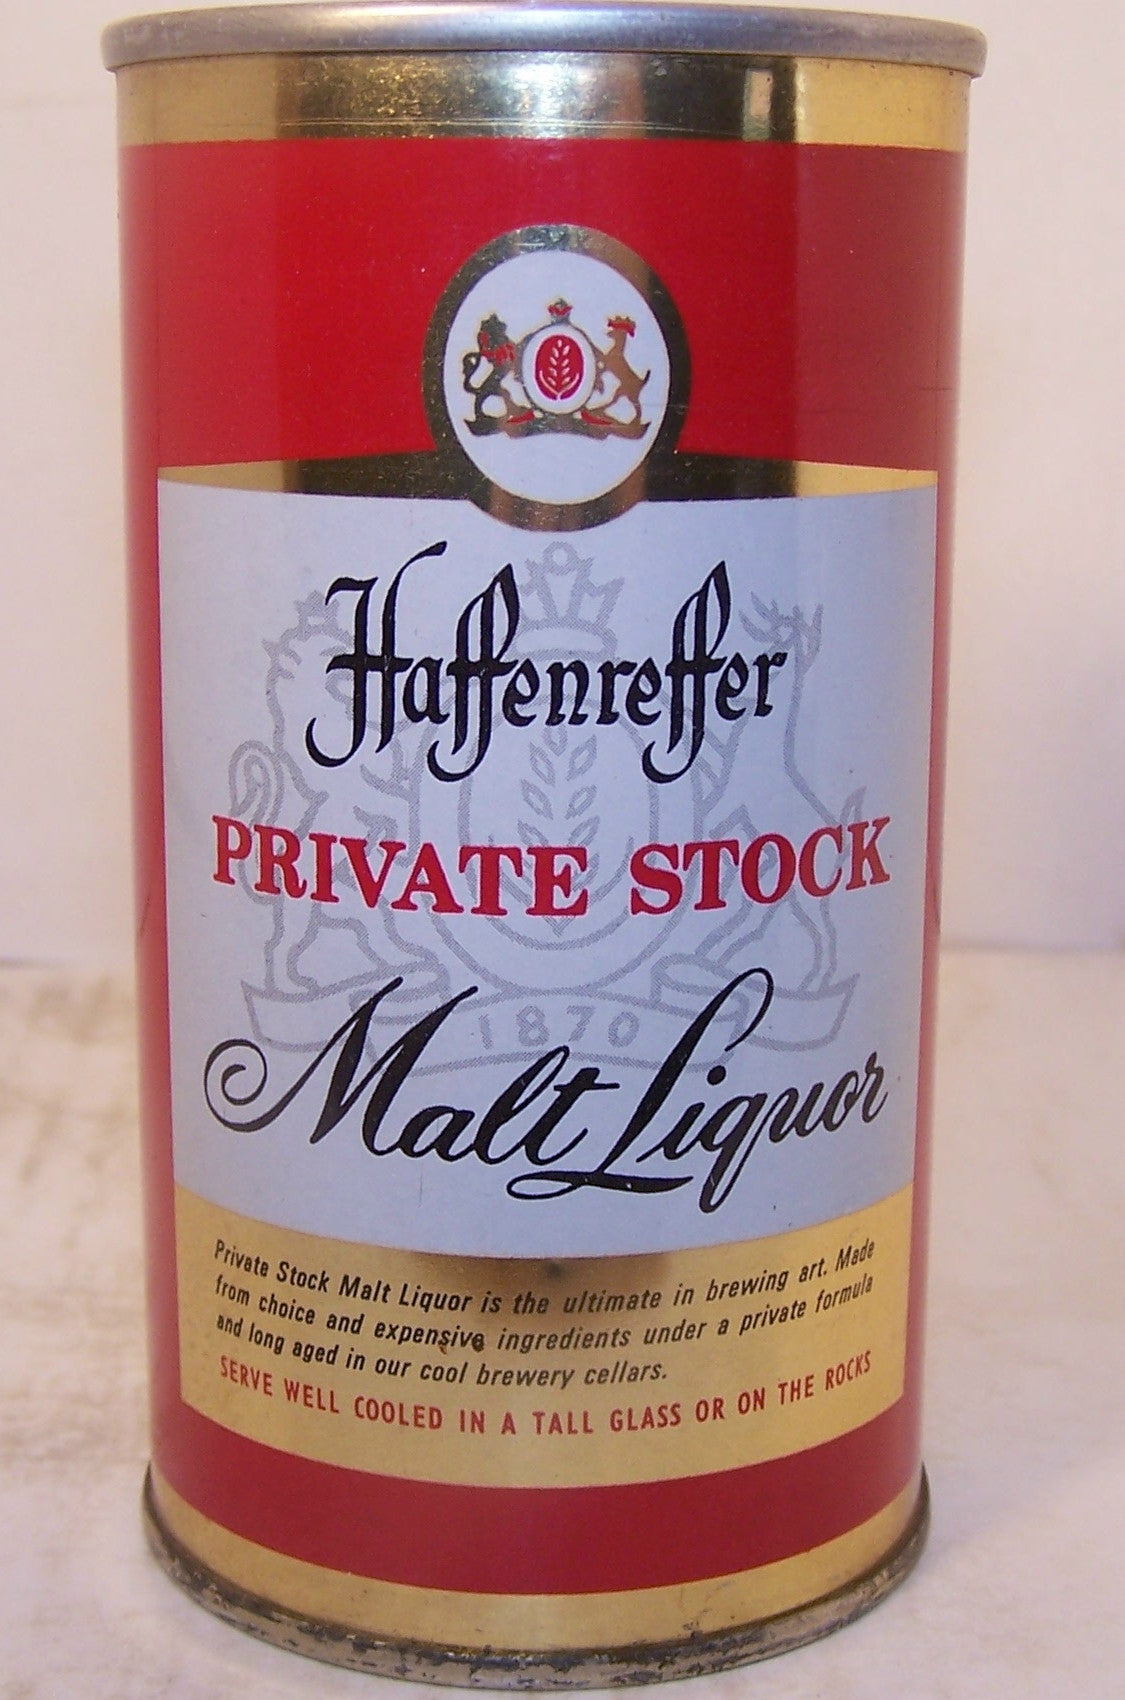 Haffenreffer Private Stock Malt Liquor, USBC II 72-2 grade 1/1+ Sold on 9/1/15